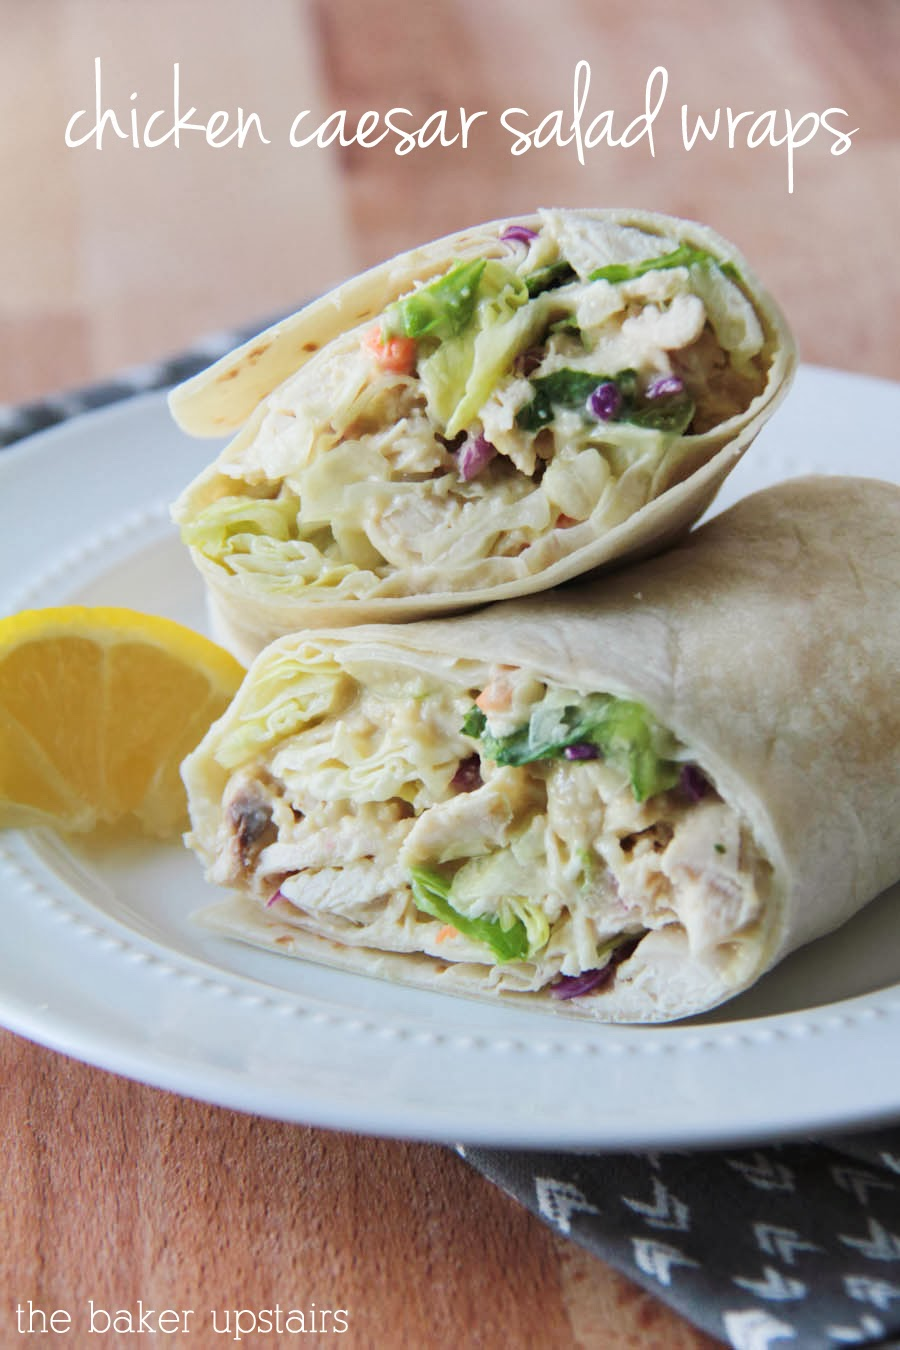 the baker upstairs: chicken caesar salad wraps